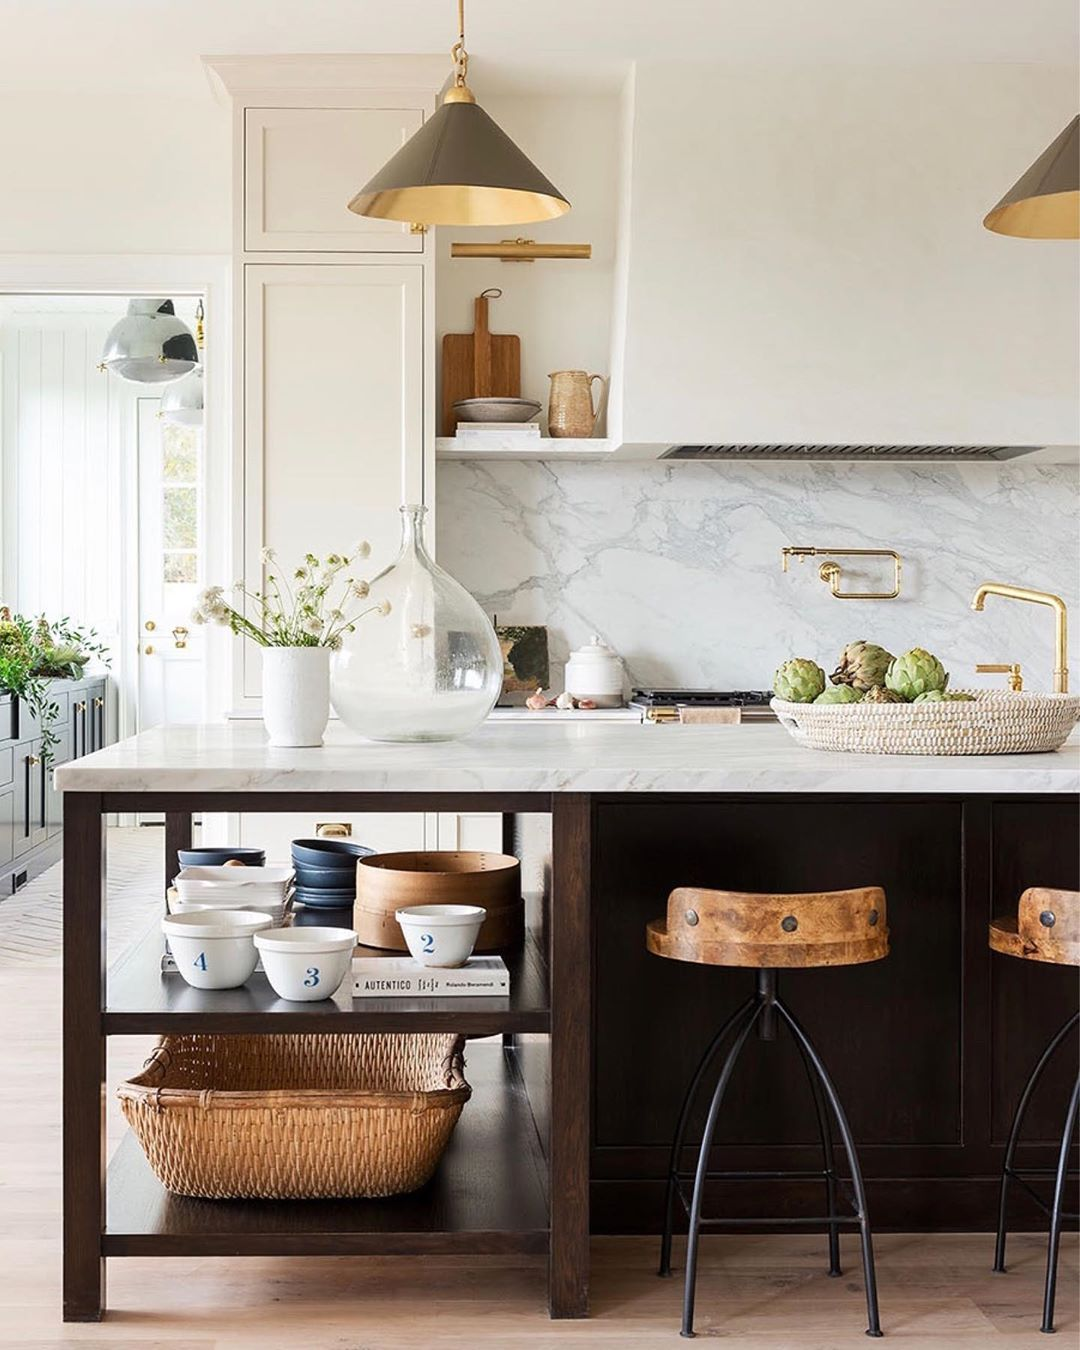 """Studio McGee on Instagram: """"I've been dreaming about this kitchen for years and plan to style it a thousand different ways - holidays, birthdays, everyday, styling…"""""""